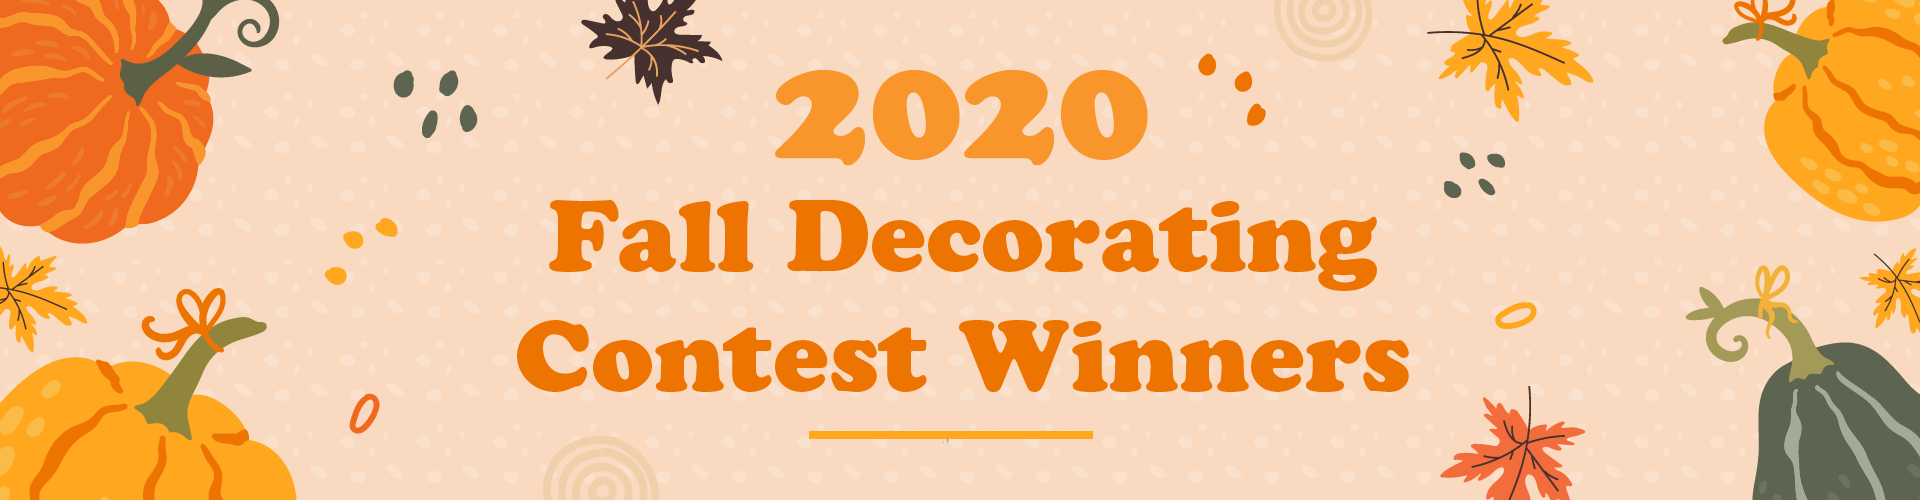 2020 Fall Decorating Contest Winners